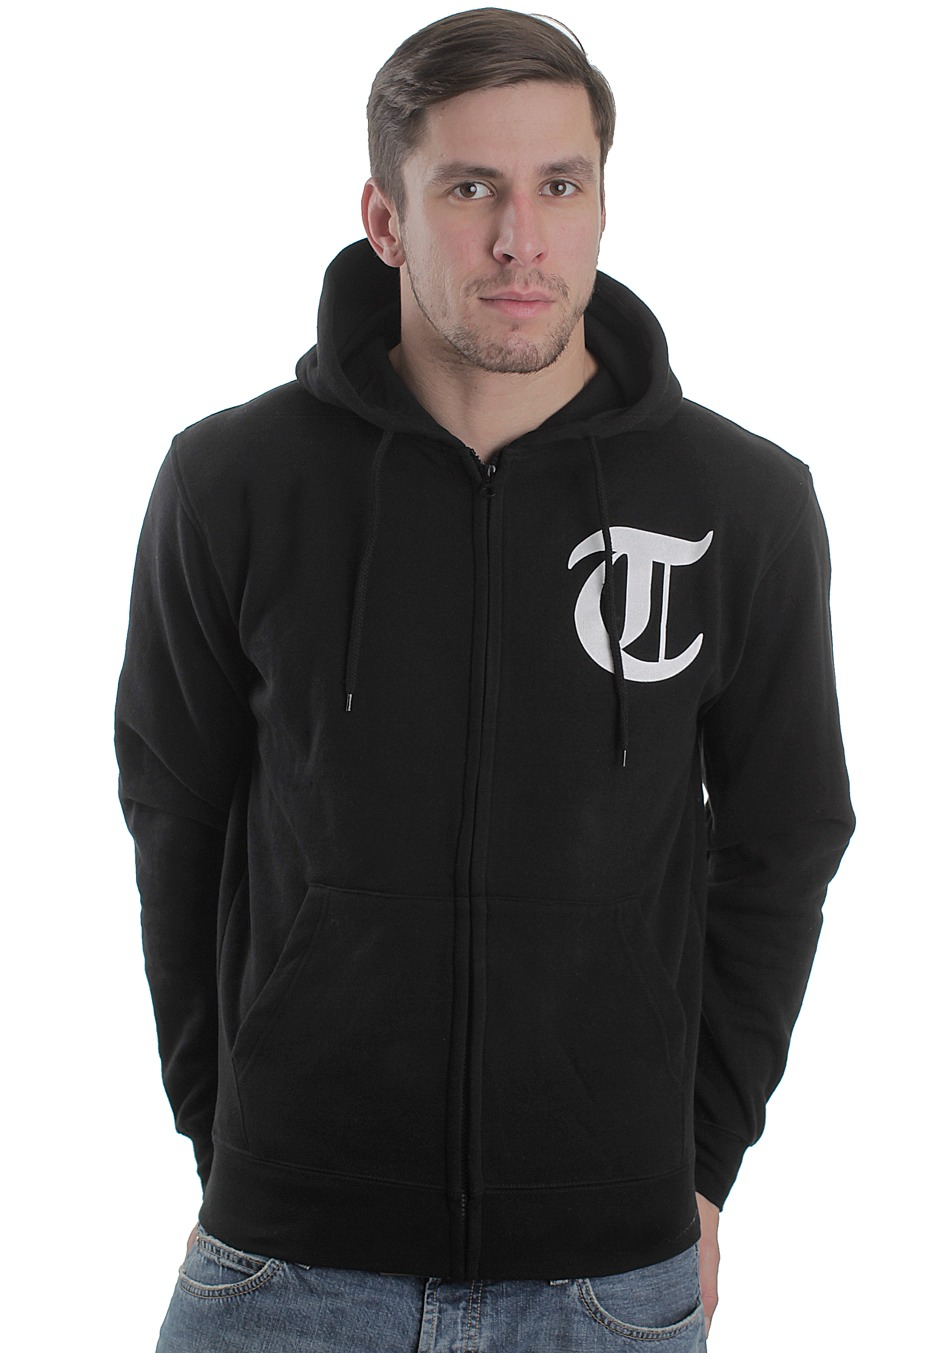 Terror keepers of the faith zipper impericon com uk